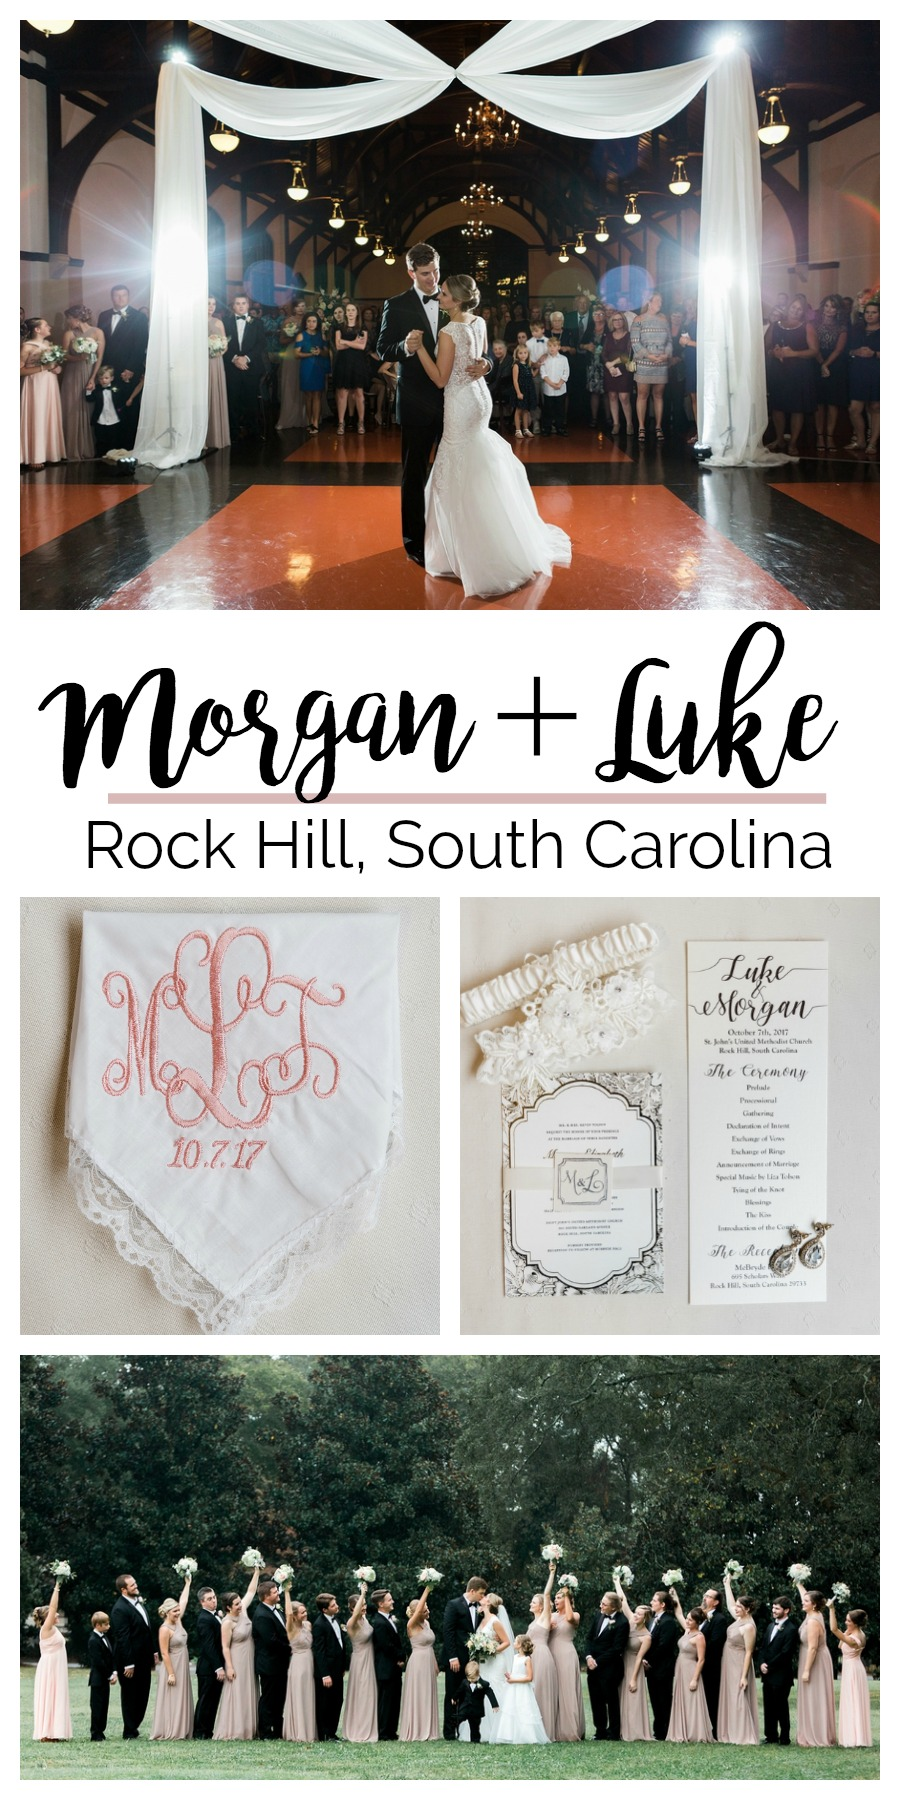 Morgan + Luke : A Winthrop University Wedding for High School Sweethearts   Palmetto State Weddings   Photography by Aaron Reel Photography